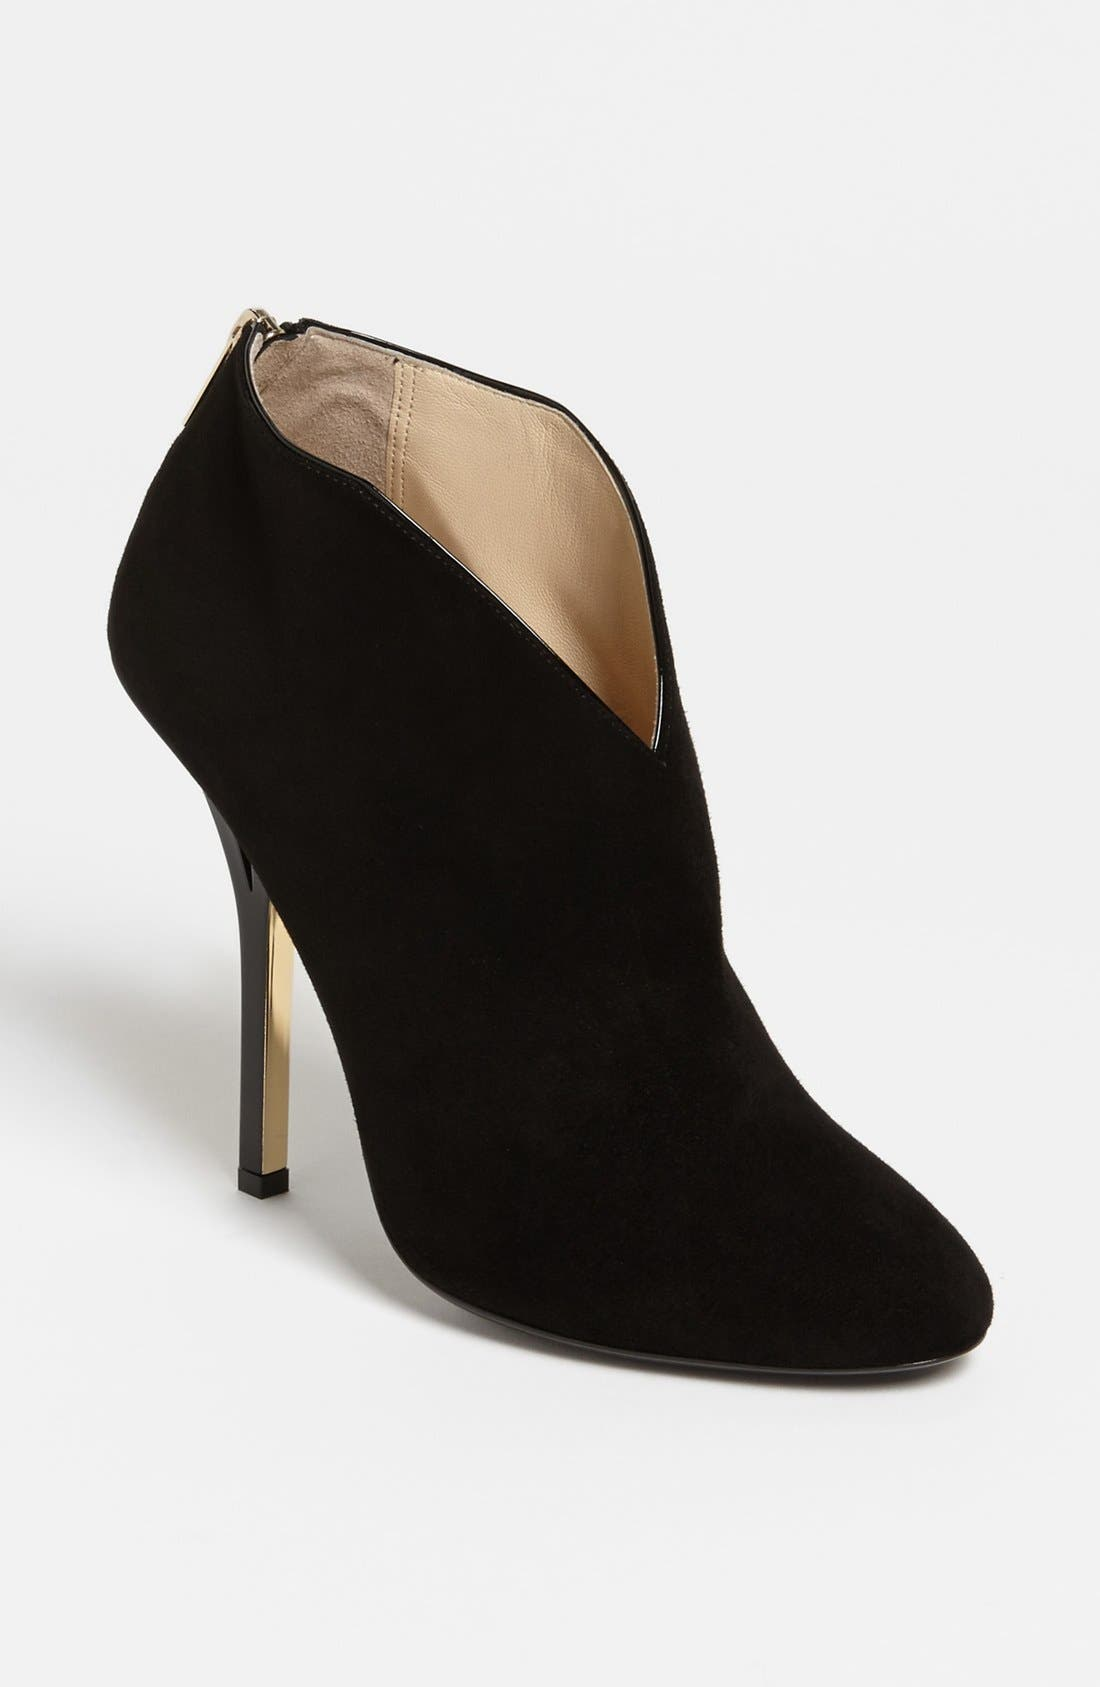 Alternate Image 1 Selected - Jimmy Choo 'Lane' Bootie